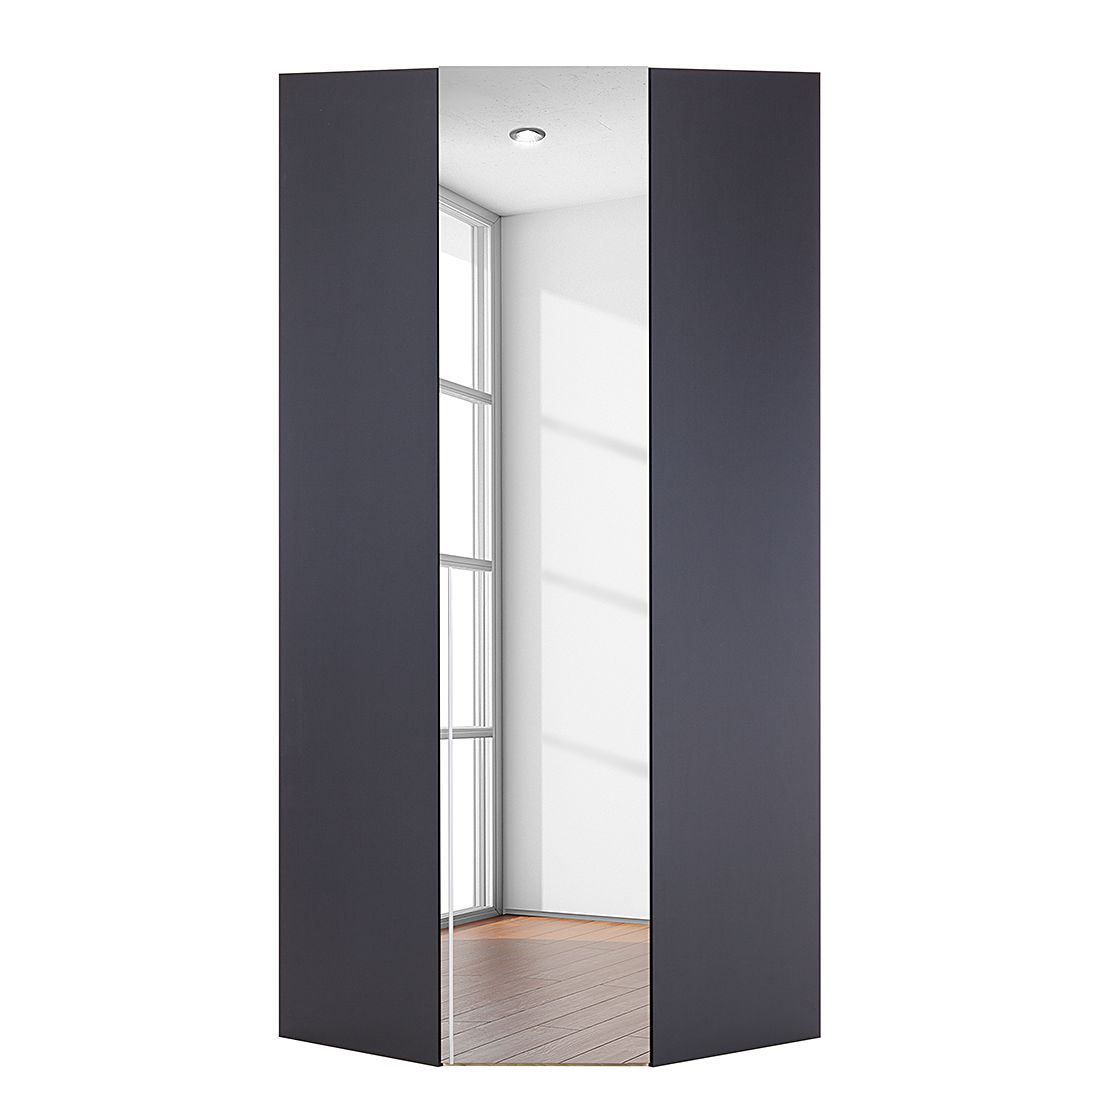 Armoire d'angle Brooklyn V - Gris graphite / Miroir - 216 cm, Express Möbel